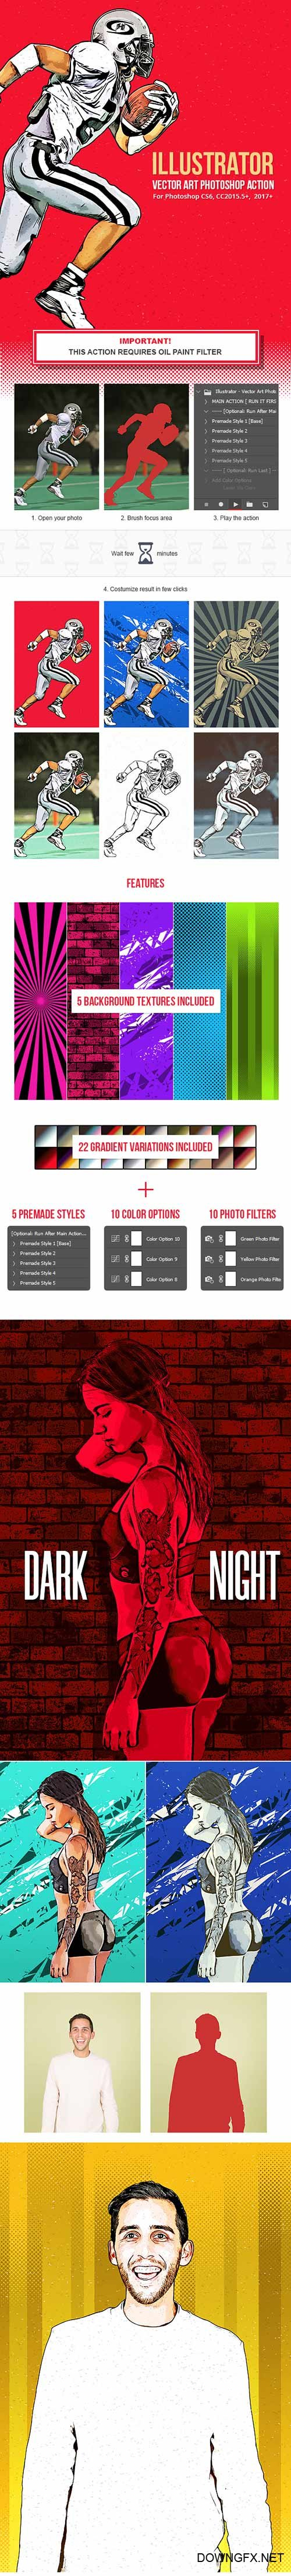 GraphicRiver - Illustrator - Vector Art Photoshop Action 22222983